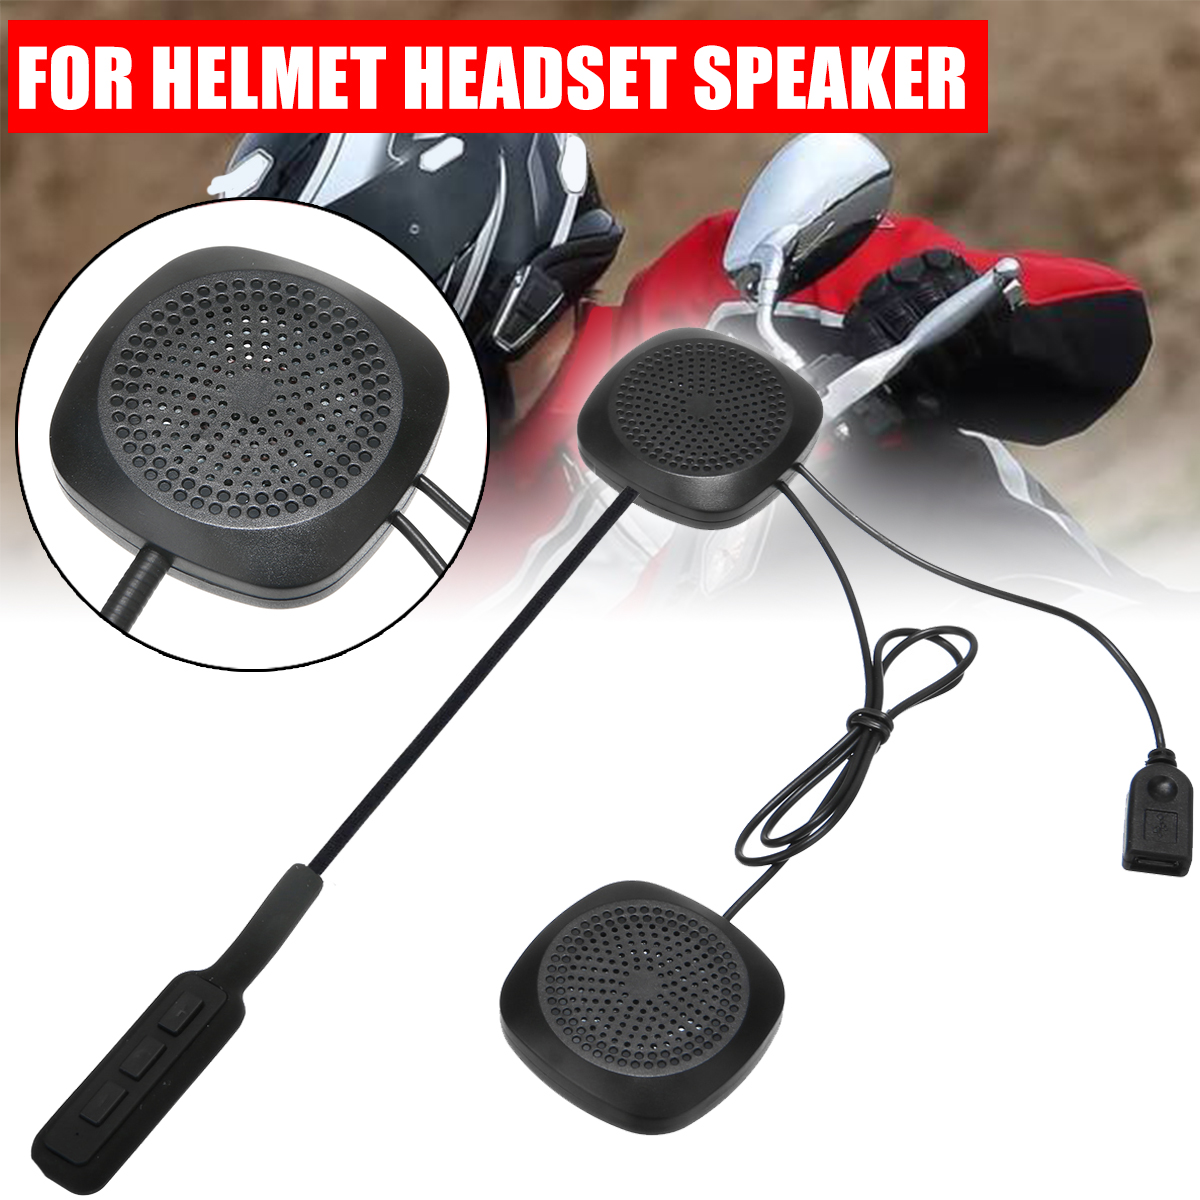 1SET High Quality Earphone Speaker Motorcycle Helmet Bluetooth Headset Headphone Mic Stereo Hands Free DC5V V4.2+bR+EDR